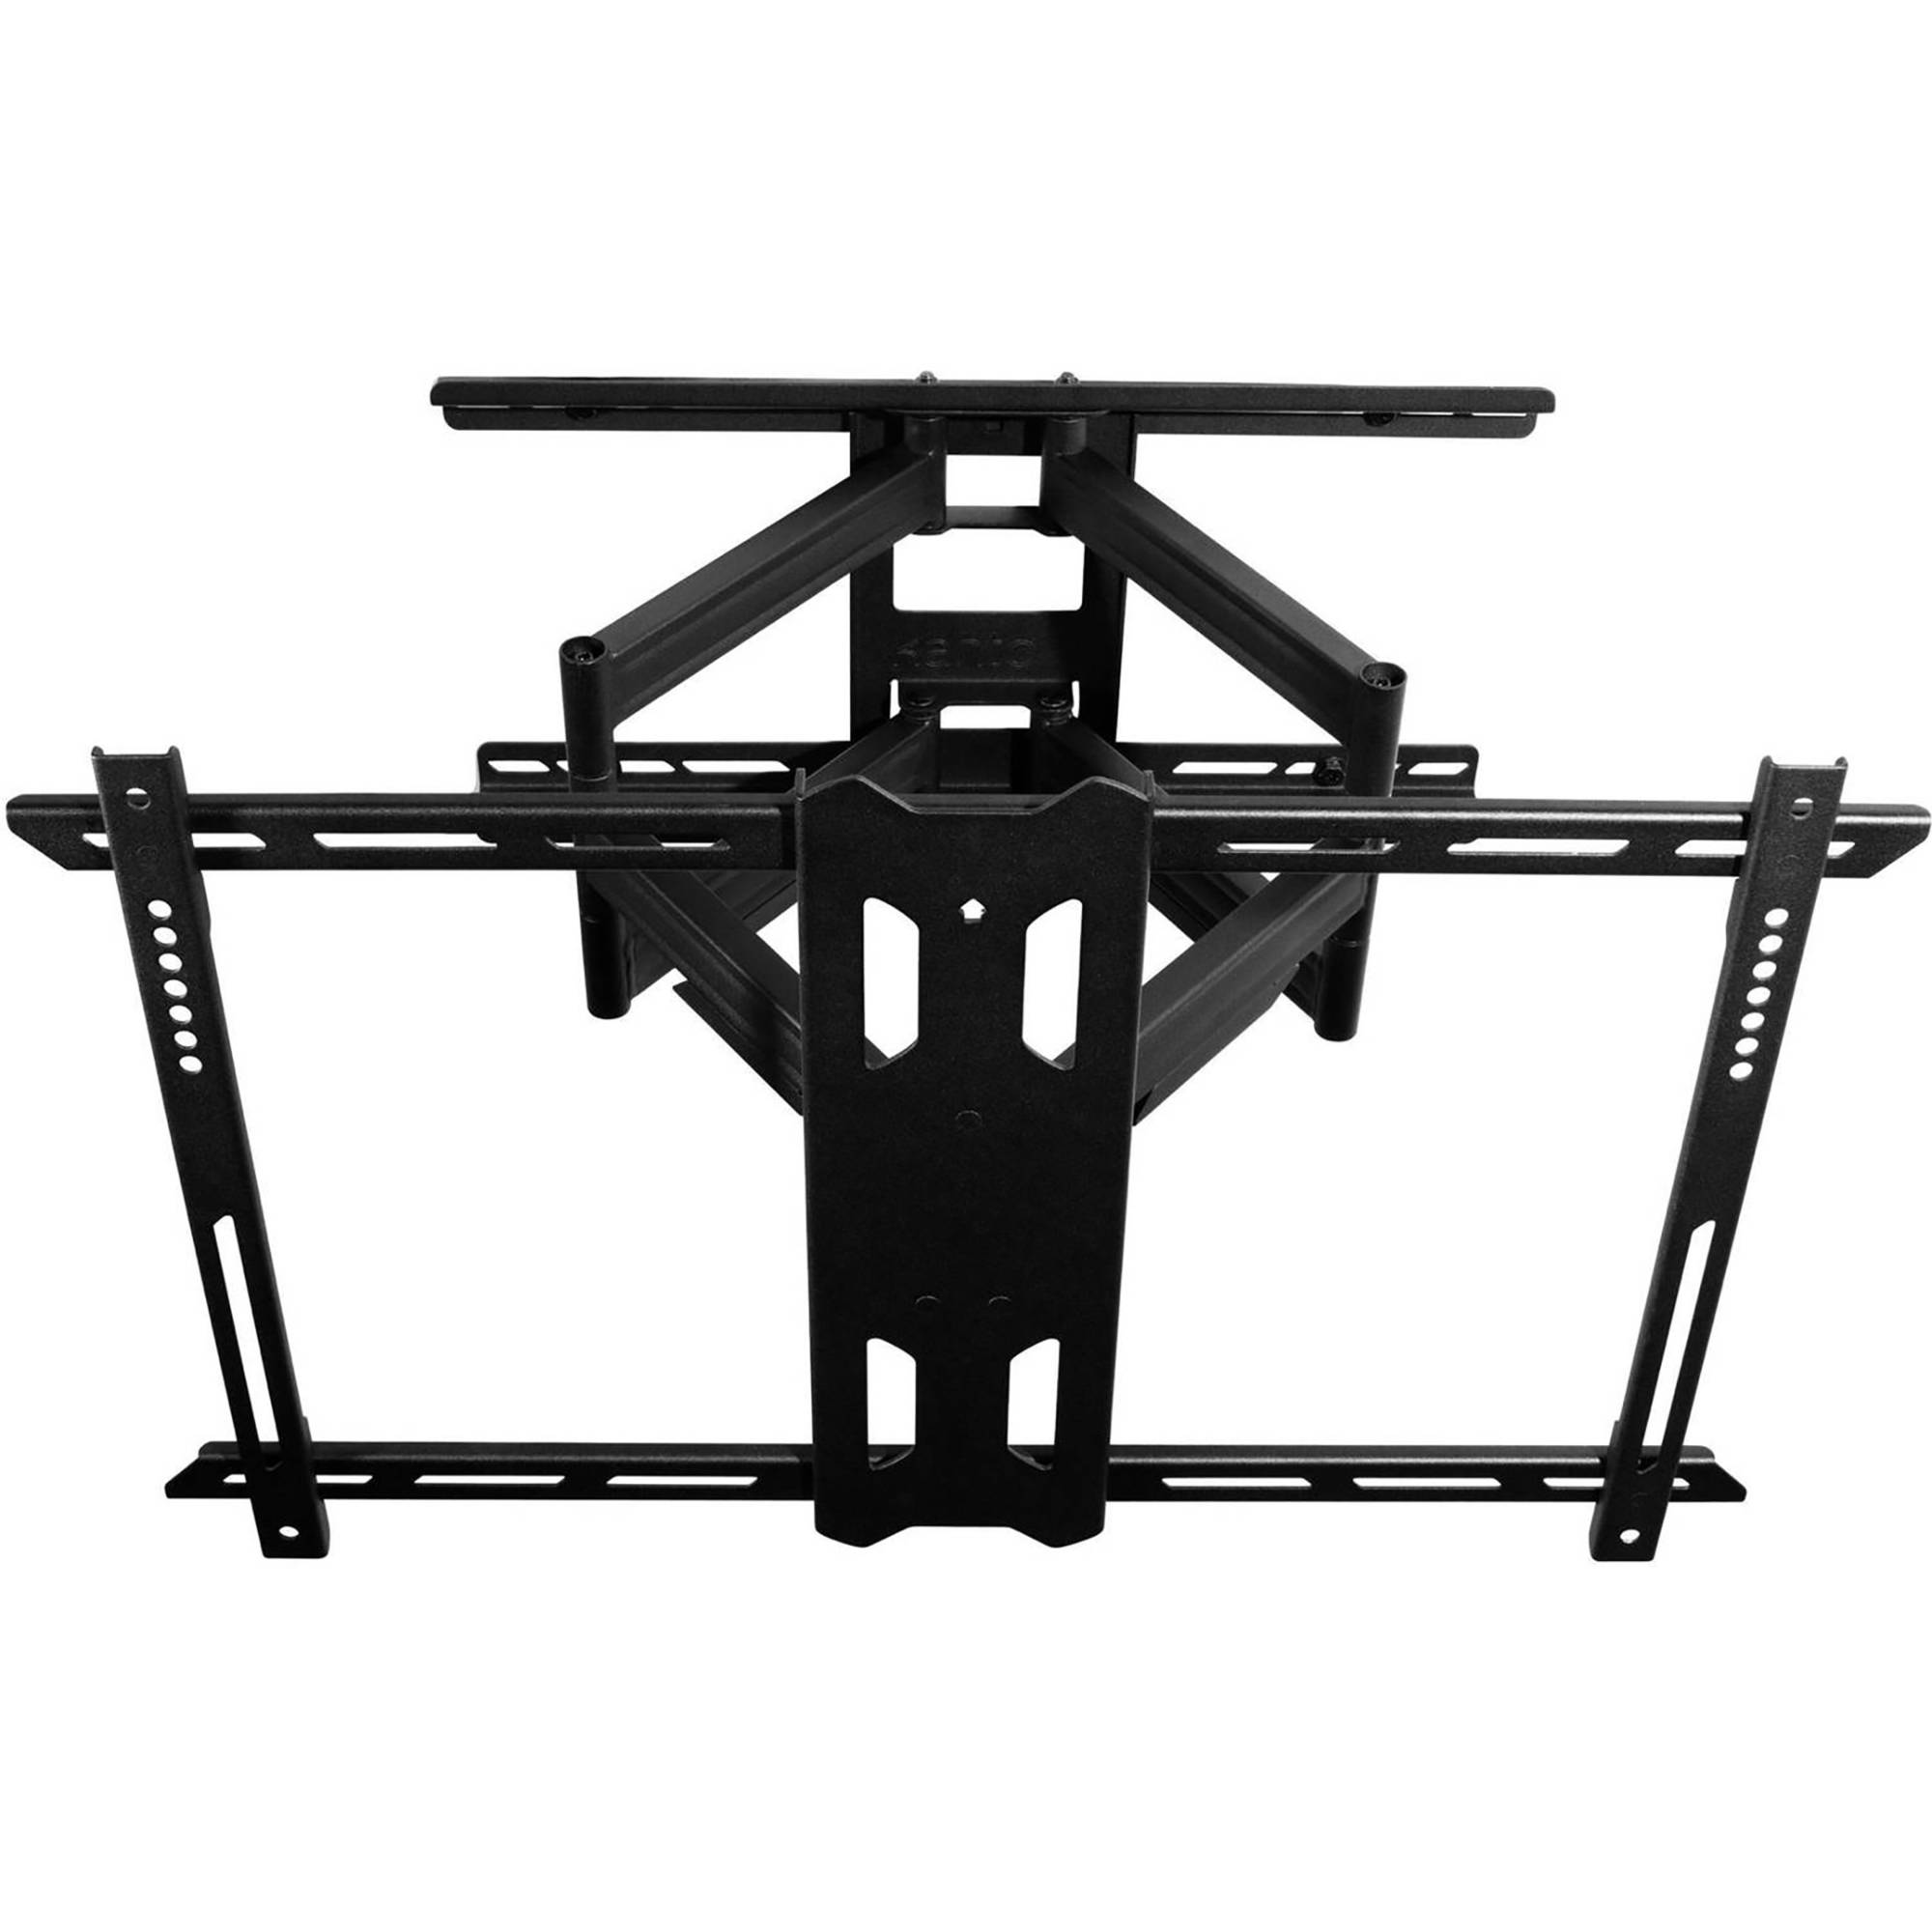 "PDX650 Full Motion TV Wall Mount for 37""-75"" HDTVs"